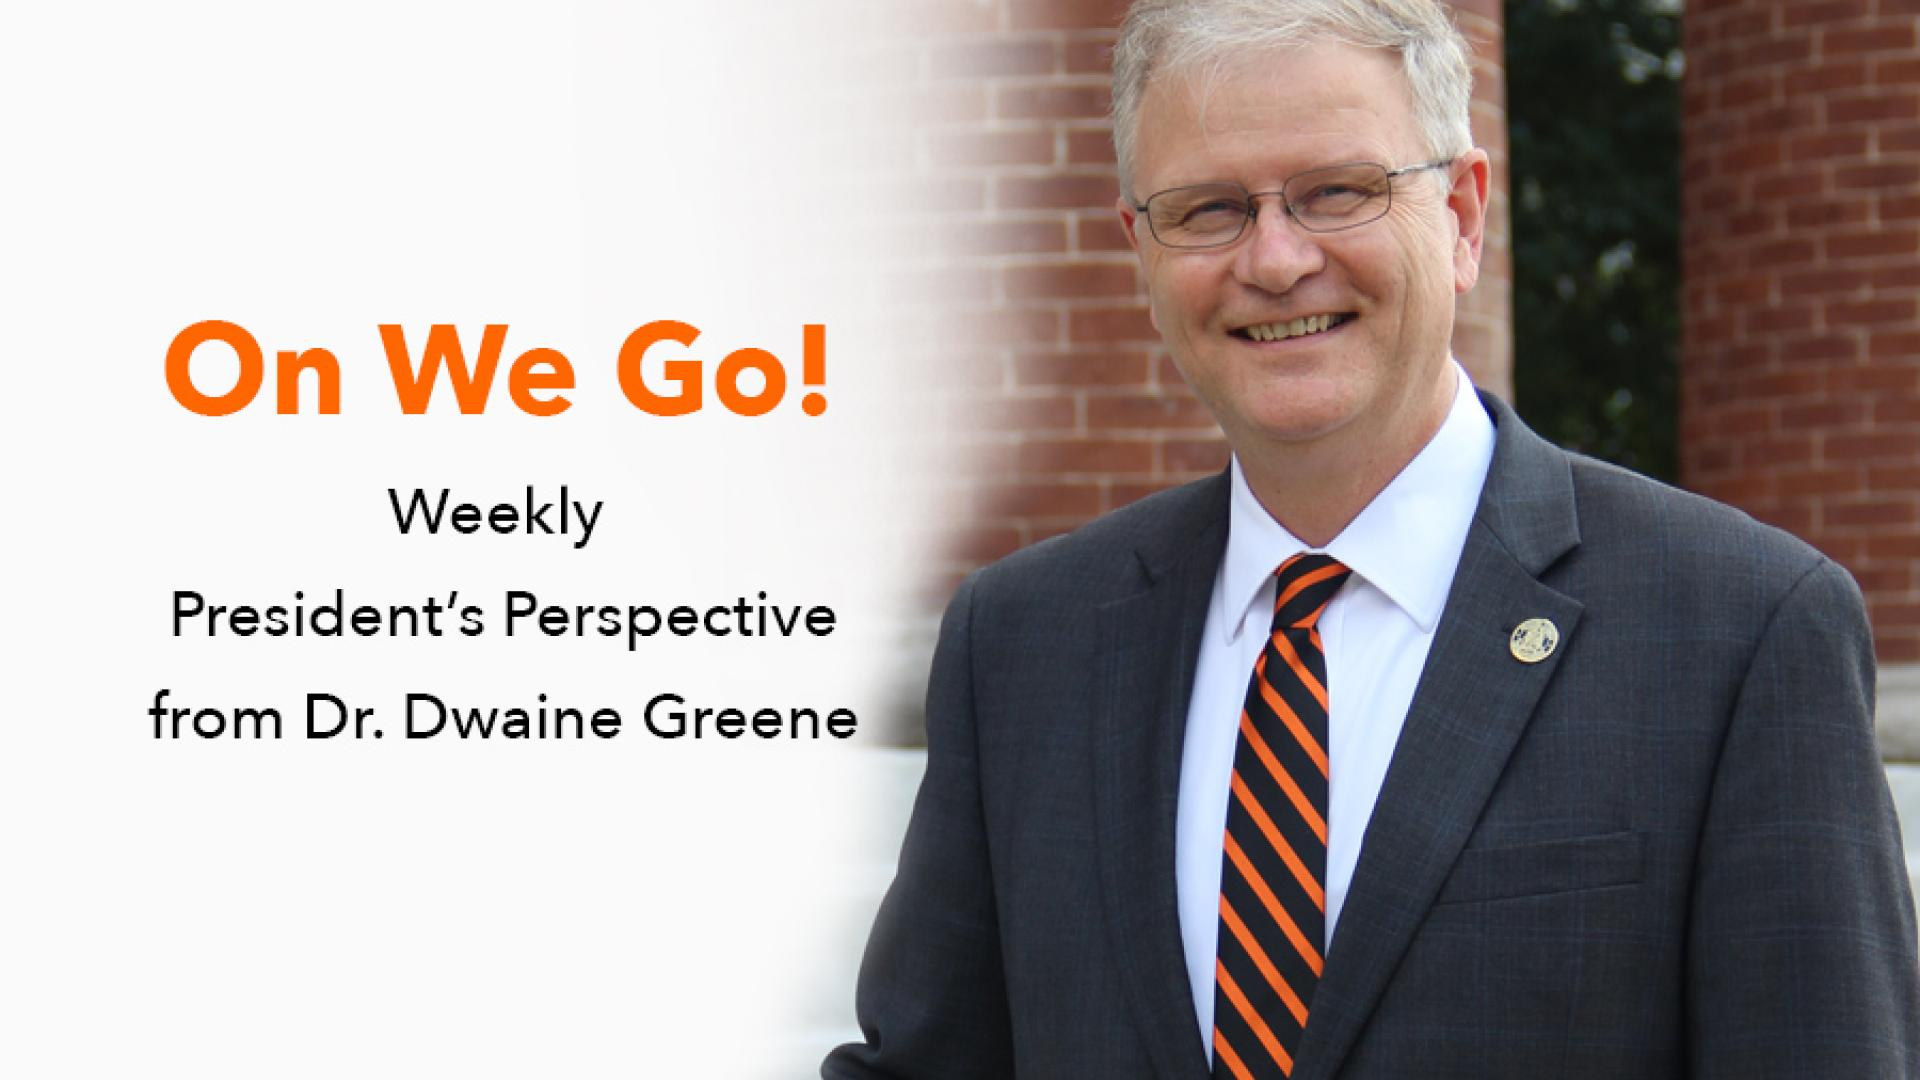 ON WE GO! - Weekly President's Perspective from Dr. Greene - February 21, 2018